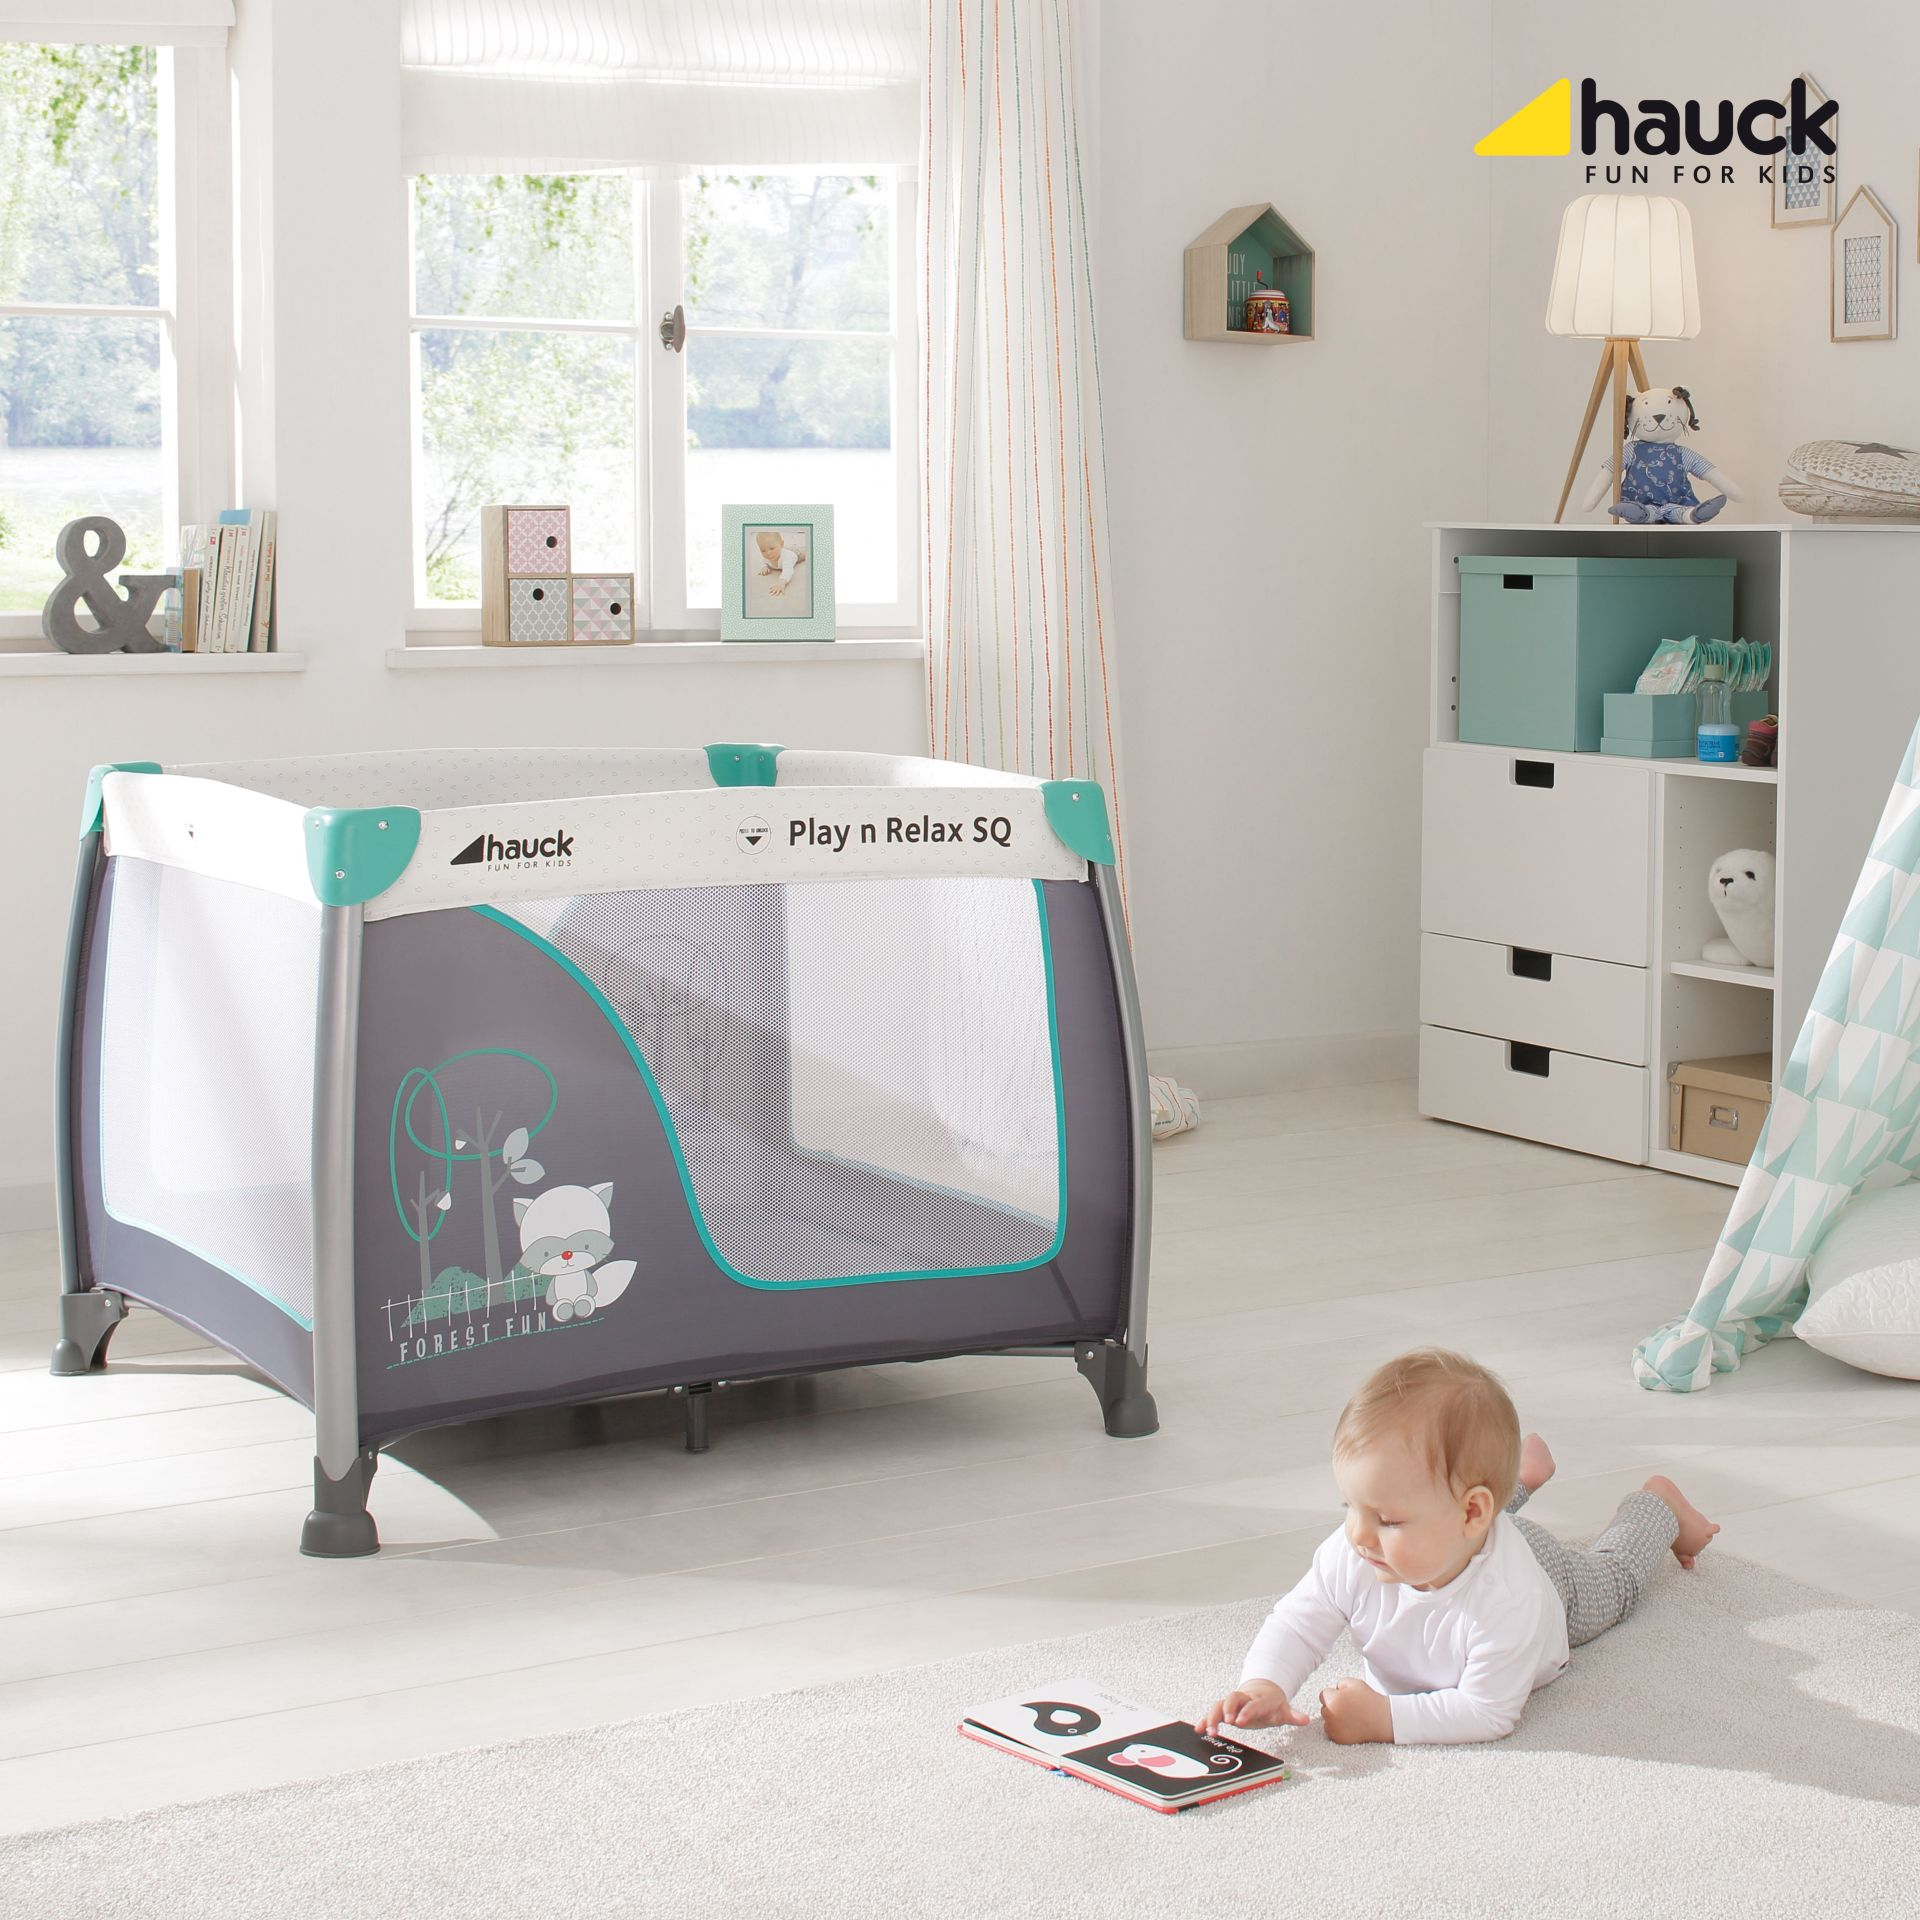 Hauck allrounder play and relax sq 2018 online kaufen bei for Kinderzimmer play 01